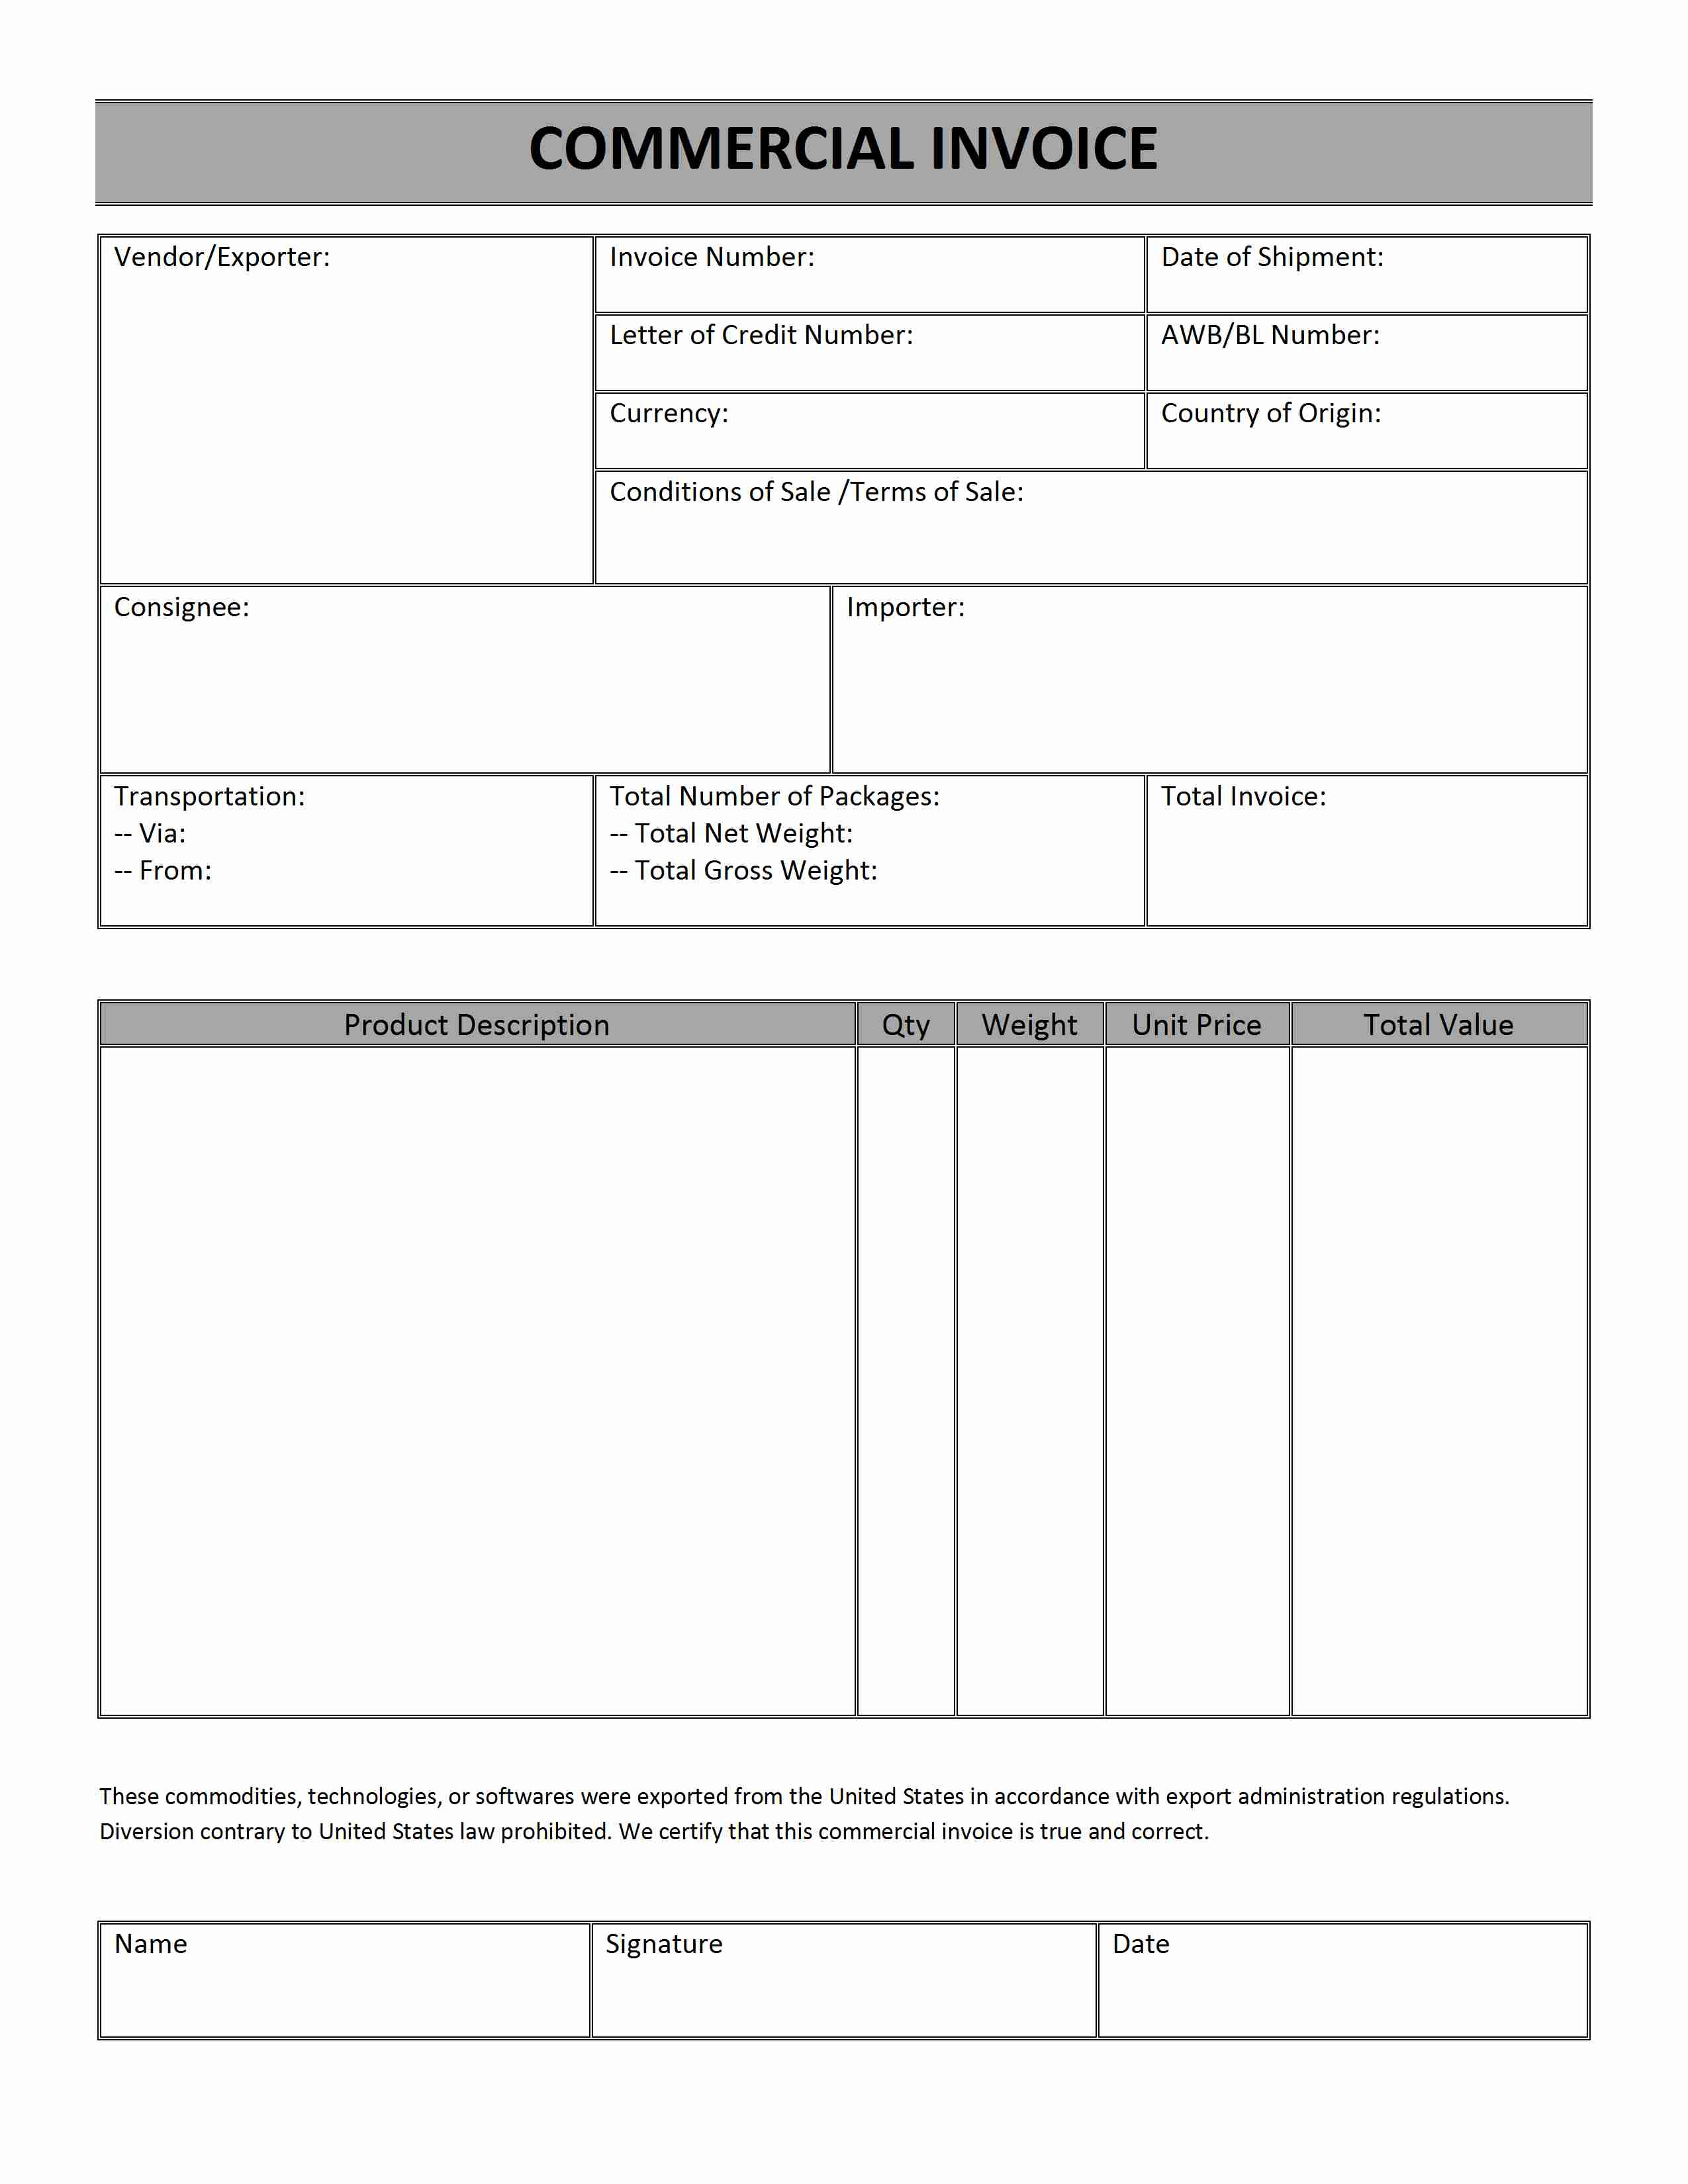 Opposenewapstandardsus  Marvellous Printable Sales Invoice Simple Invoice Form Free Invoice  With Lovable Printable Receipt Free  Free Printable Raffle Tickets  Receipt   Printable With Alluring Free Invoice Template Pdf Also How To Send An Invoice On Ebay In Addition Business Invoice Template And Invoice Price Car As Well As Invoice Program Additionally Invoice Book From Happytomco With Opposenewapstandardsus  Lovable Printable Sales Invoice Simple Invoice Form Free Invoice  With Alluring Printable Receipt Free  Free Printable Raffle Tickets  Receipt   Printable And Marvellous Free Invoice Template Pdf Also How To Send An Invoice On Ebay In Addition Business Invoice Template From Happytomco